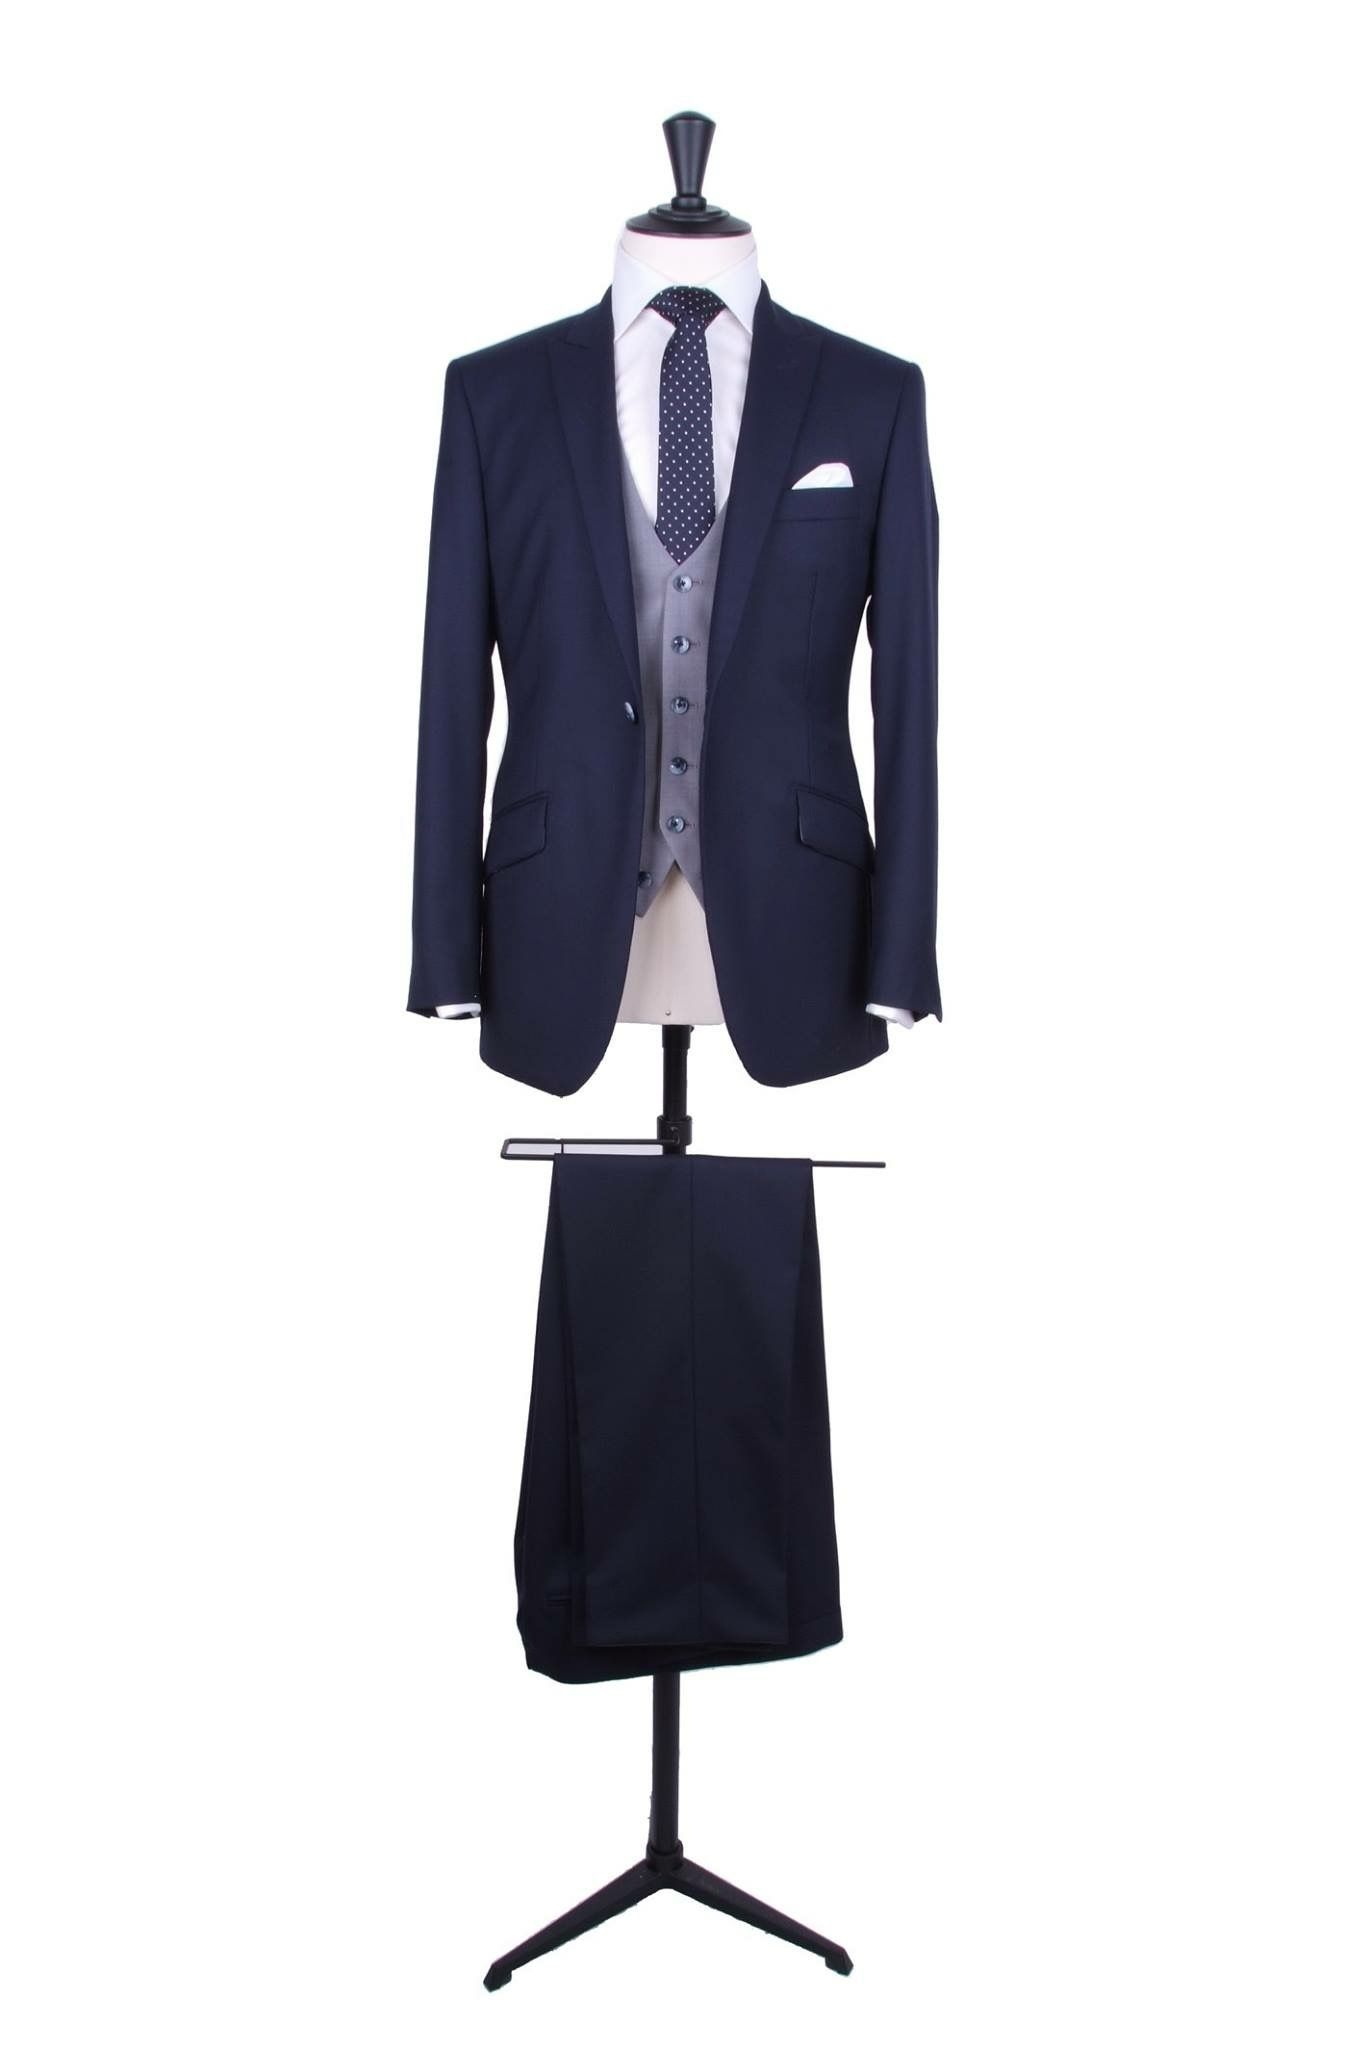 Navy Made To Measure Suit With Contrasting Single Breasted Grey Waistcoat With Navy And White Spot Tie And White Handkerchief Costume Mariage Costume Mariage